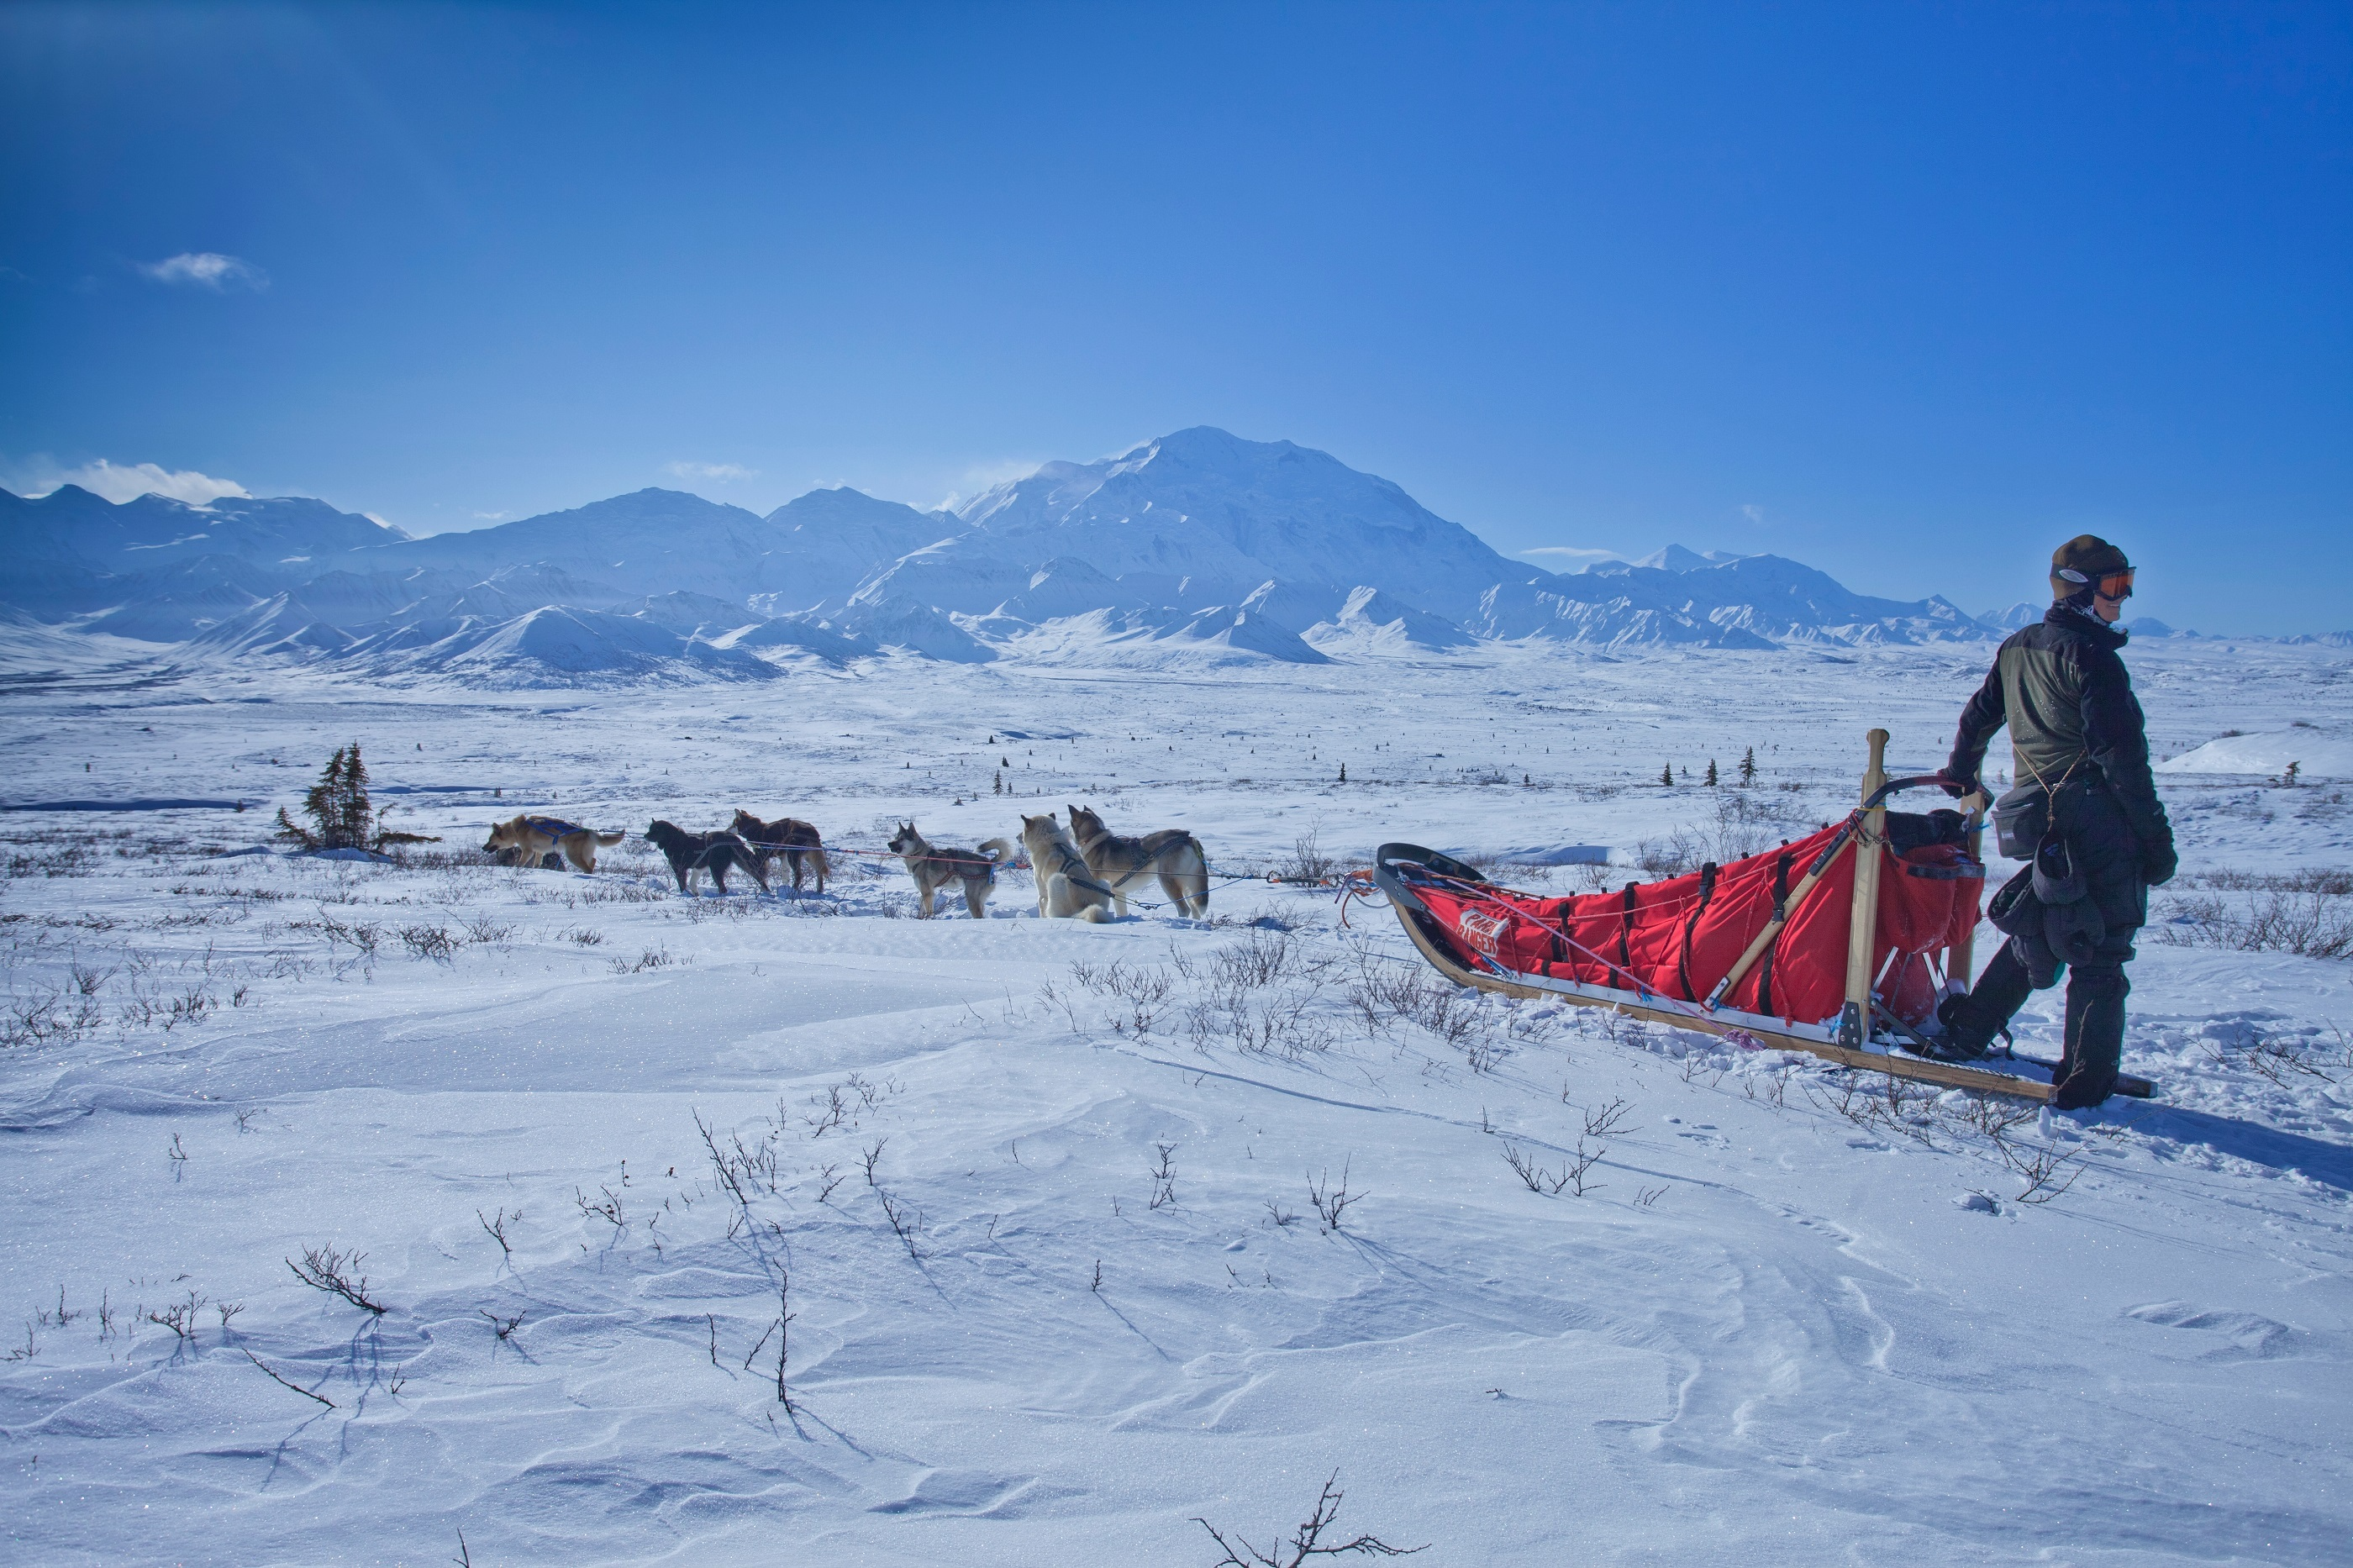 Musher with team of sled dogs in front of mountains of Denali National Park.